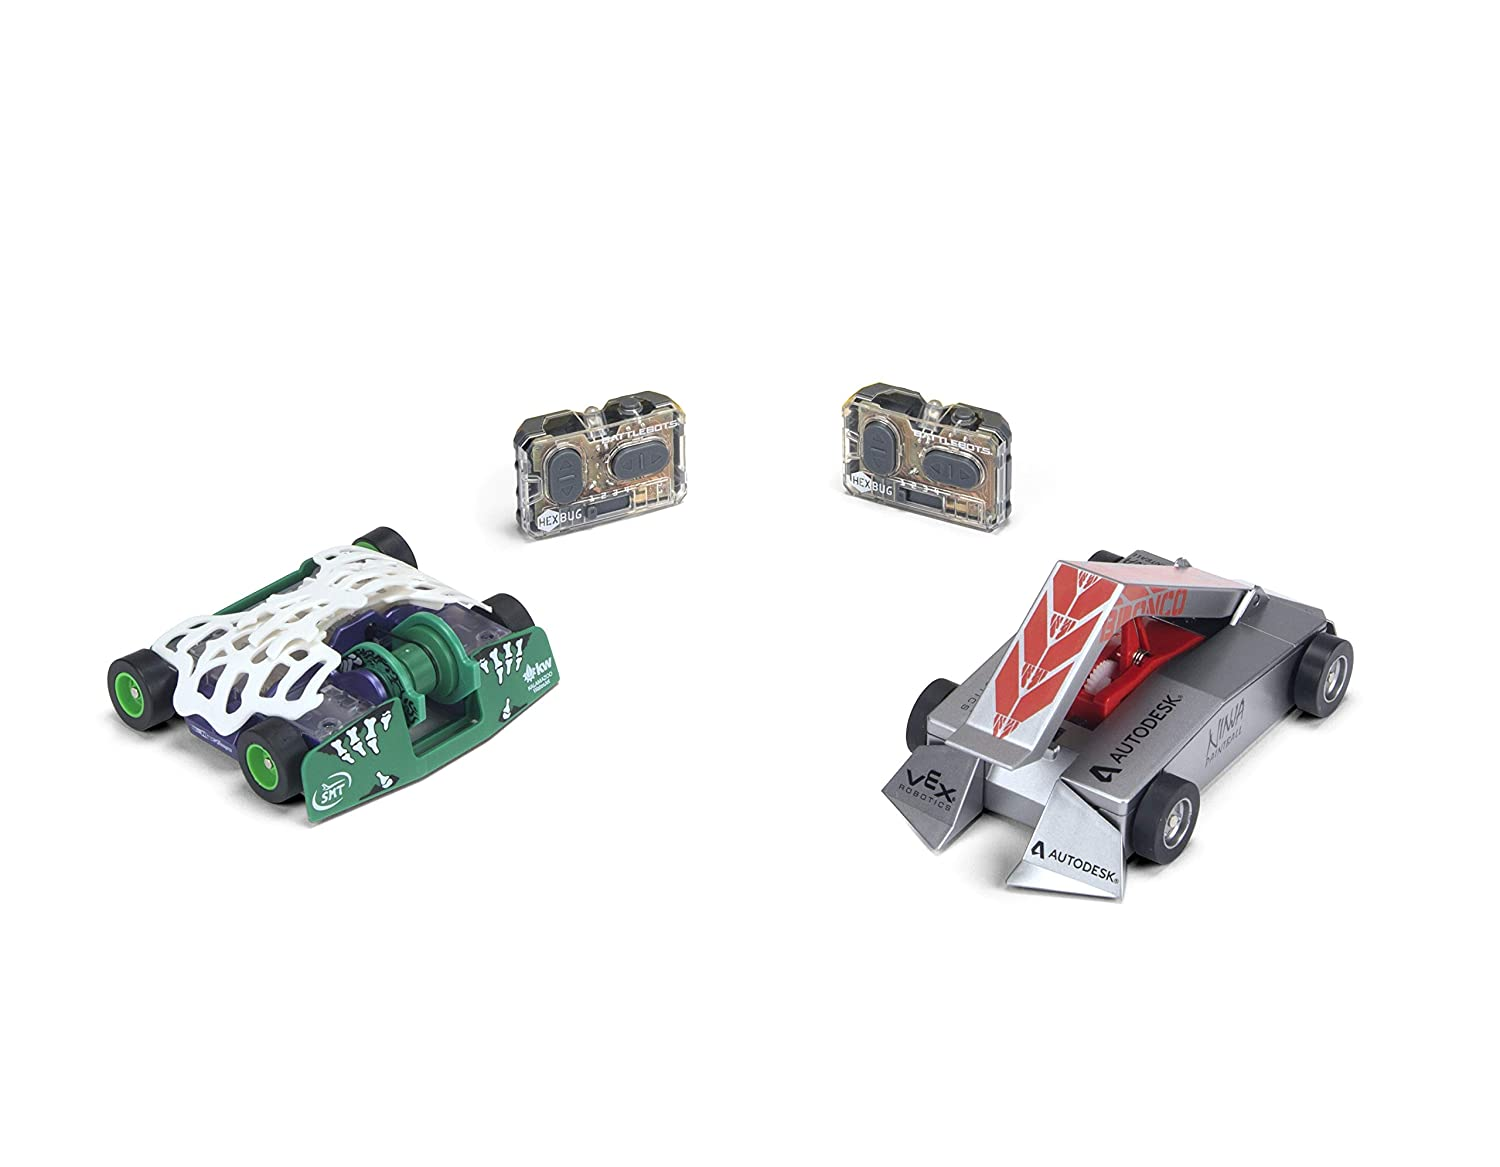 HEXBUG BattleBots Rivals Bronco and Witch Doctor